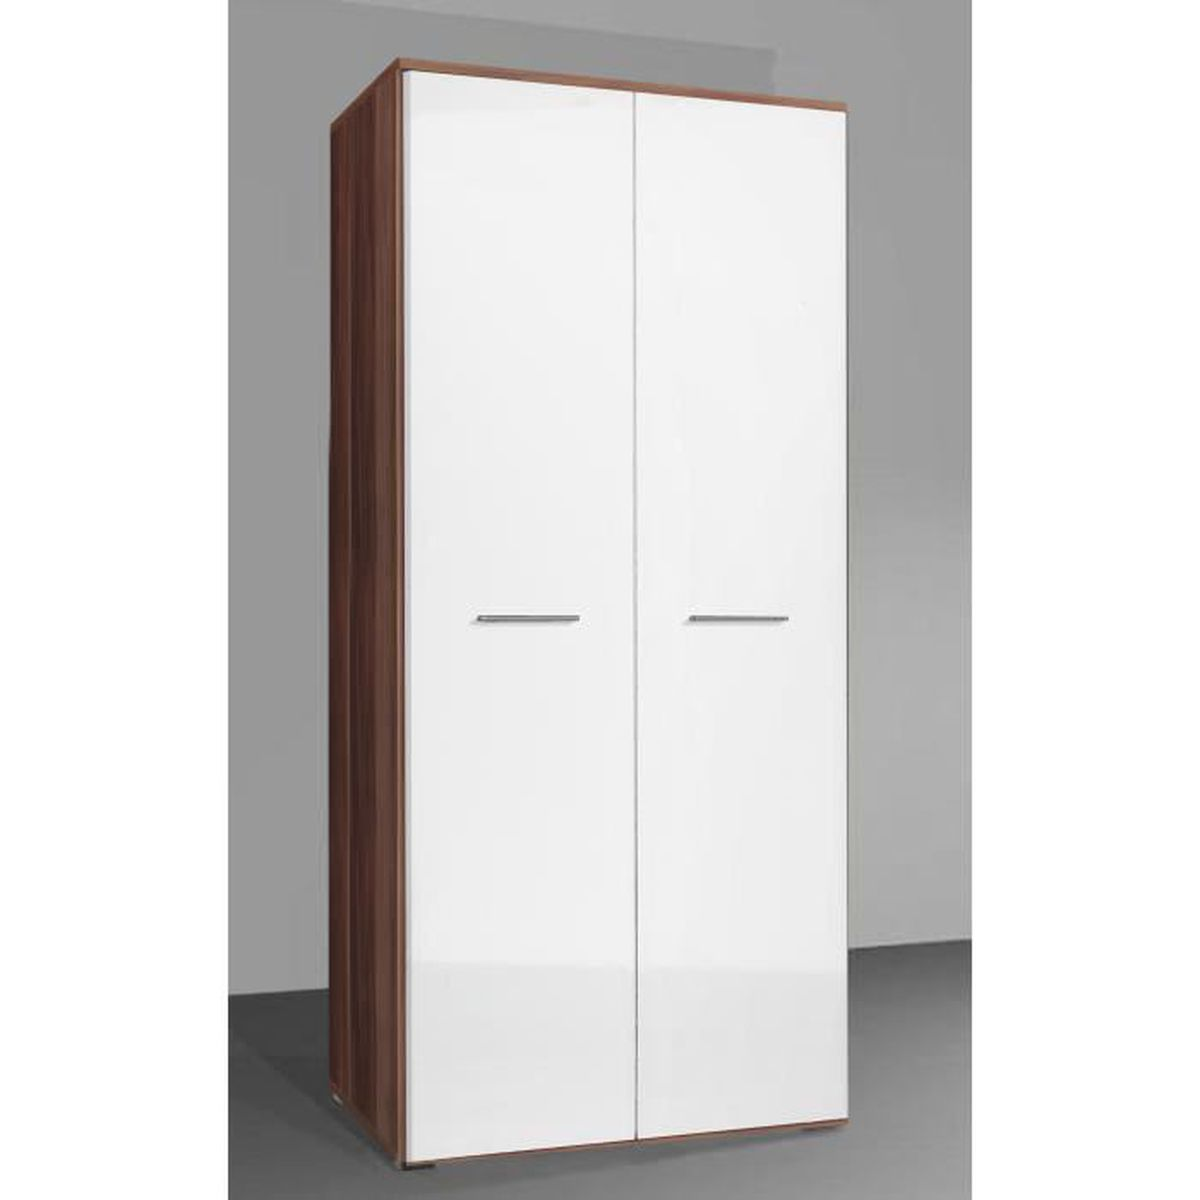 armoire design safa bois blanc achat vente armoire de chambre armoire design safa bois bl. Black Bedroom Furniture Sets. Home Design Ideas